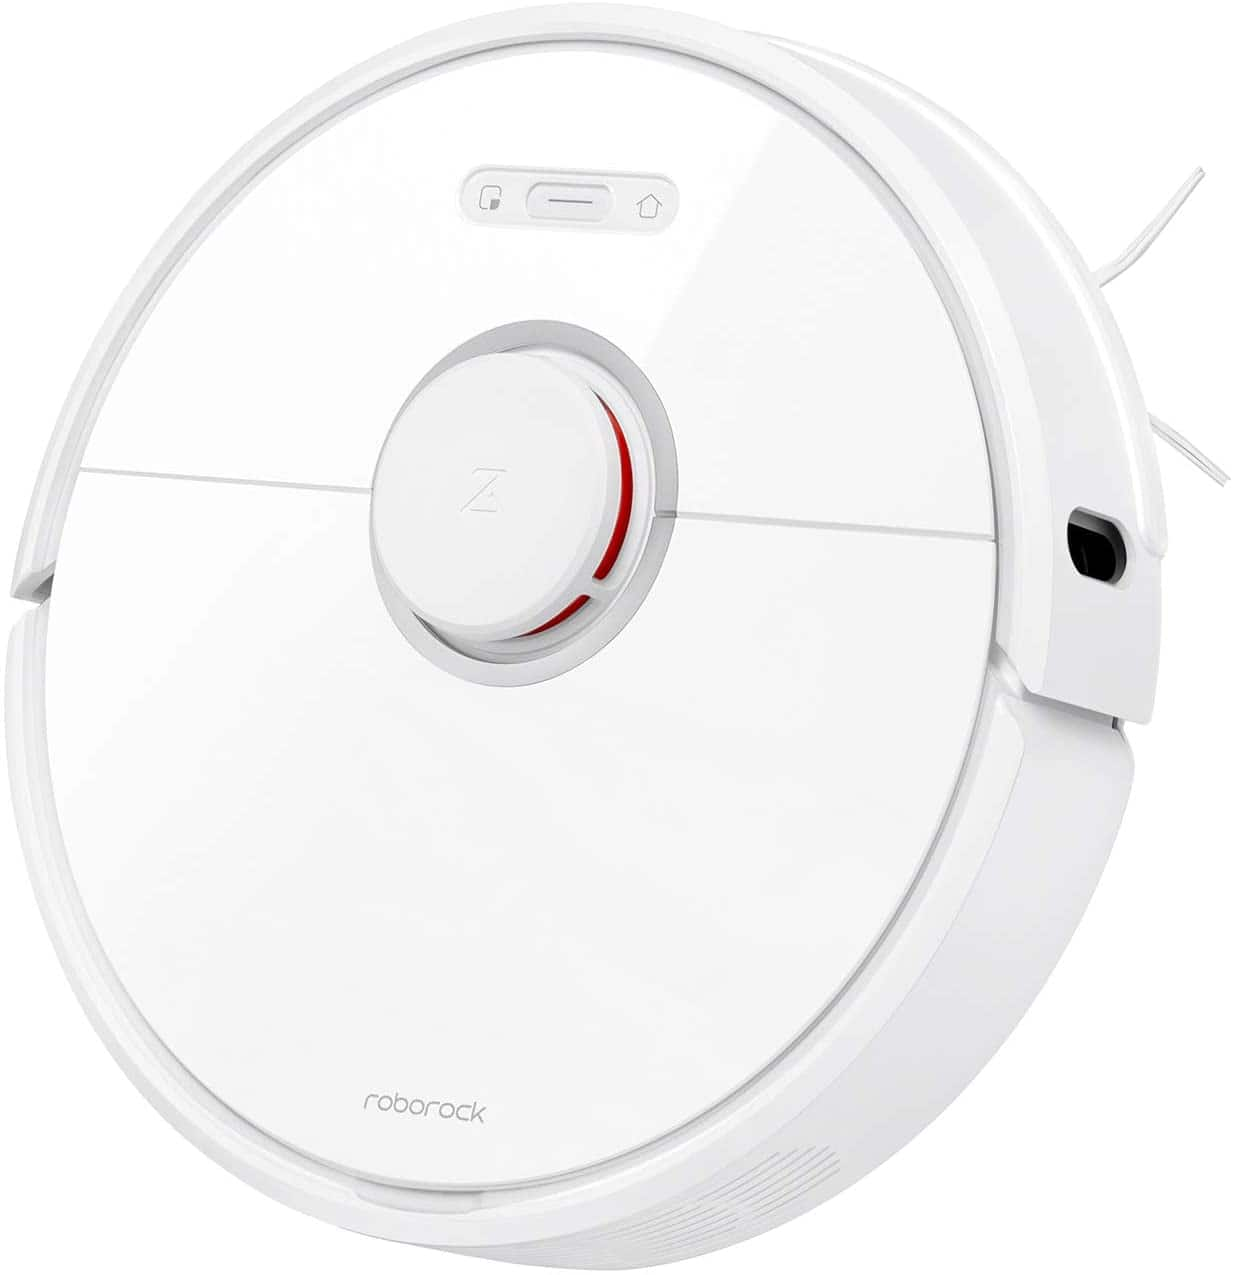 Roborock S6 Robot Vacuum with Multi-floor Mapping-Black & White for $422 + Free Shipping